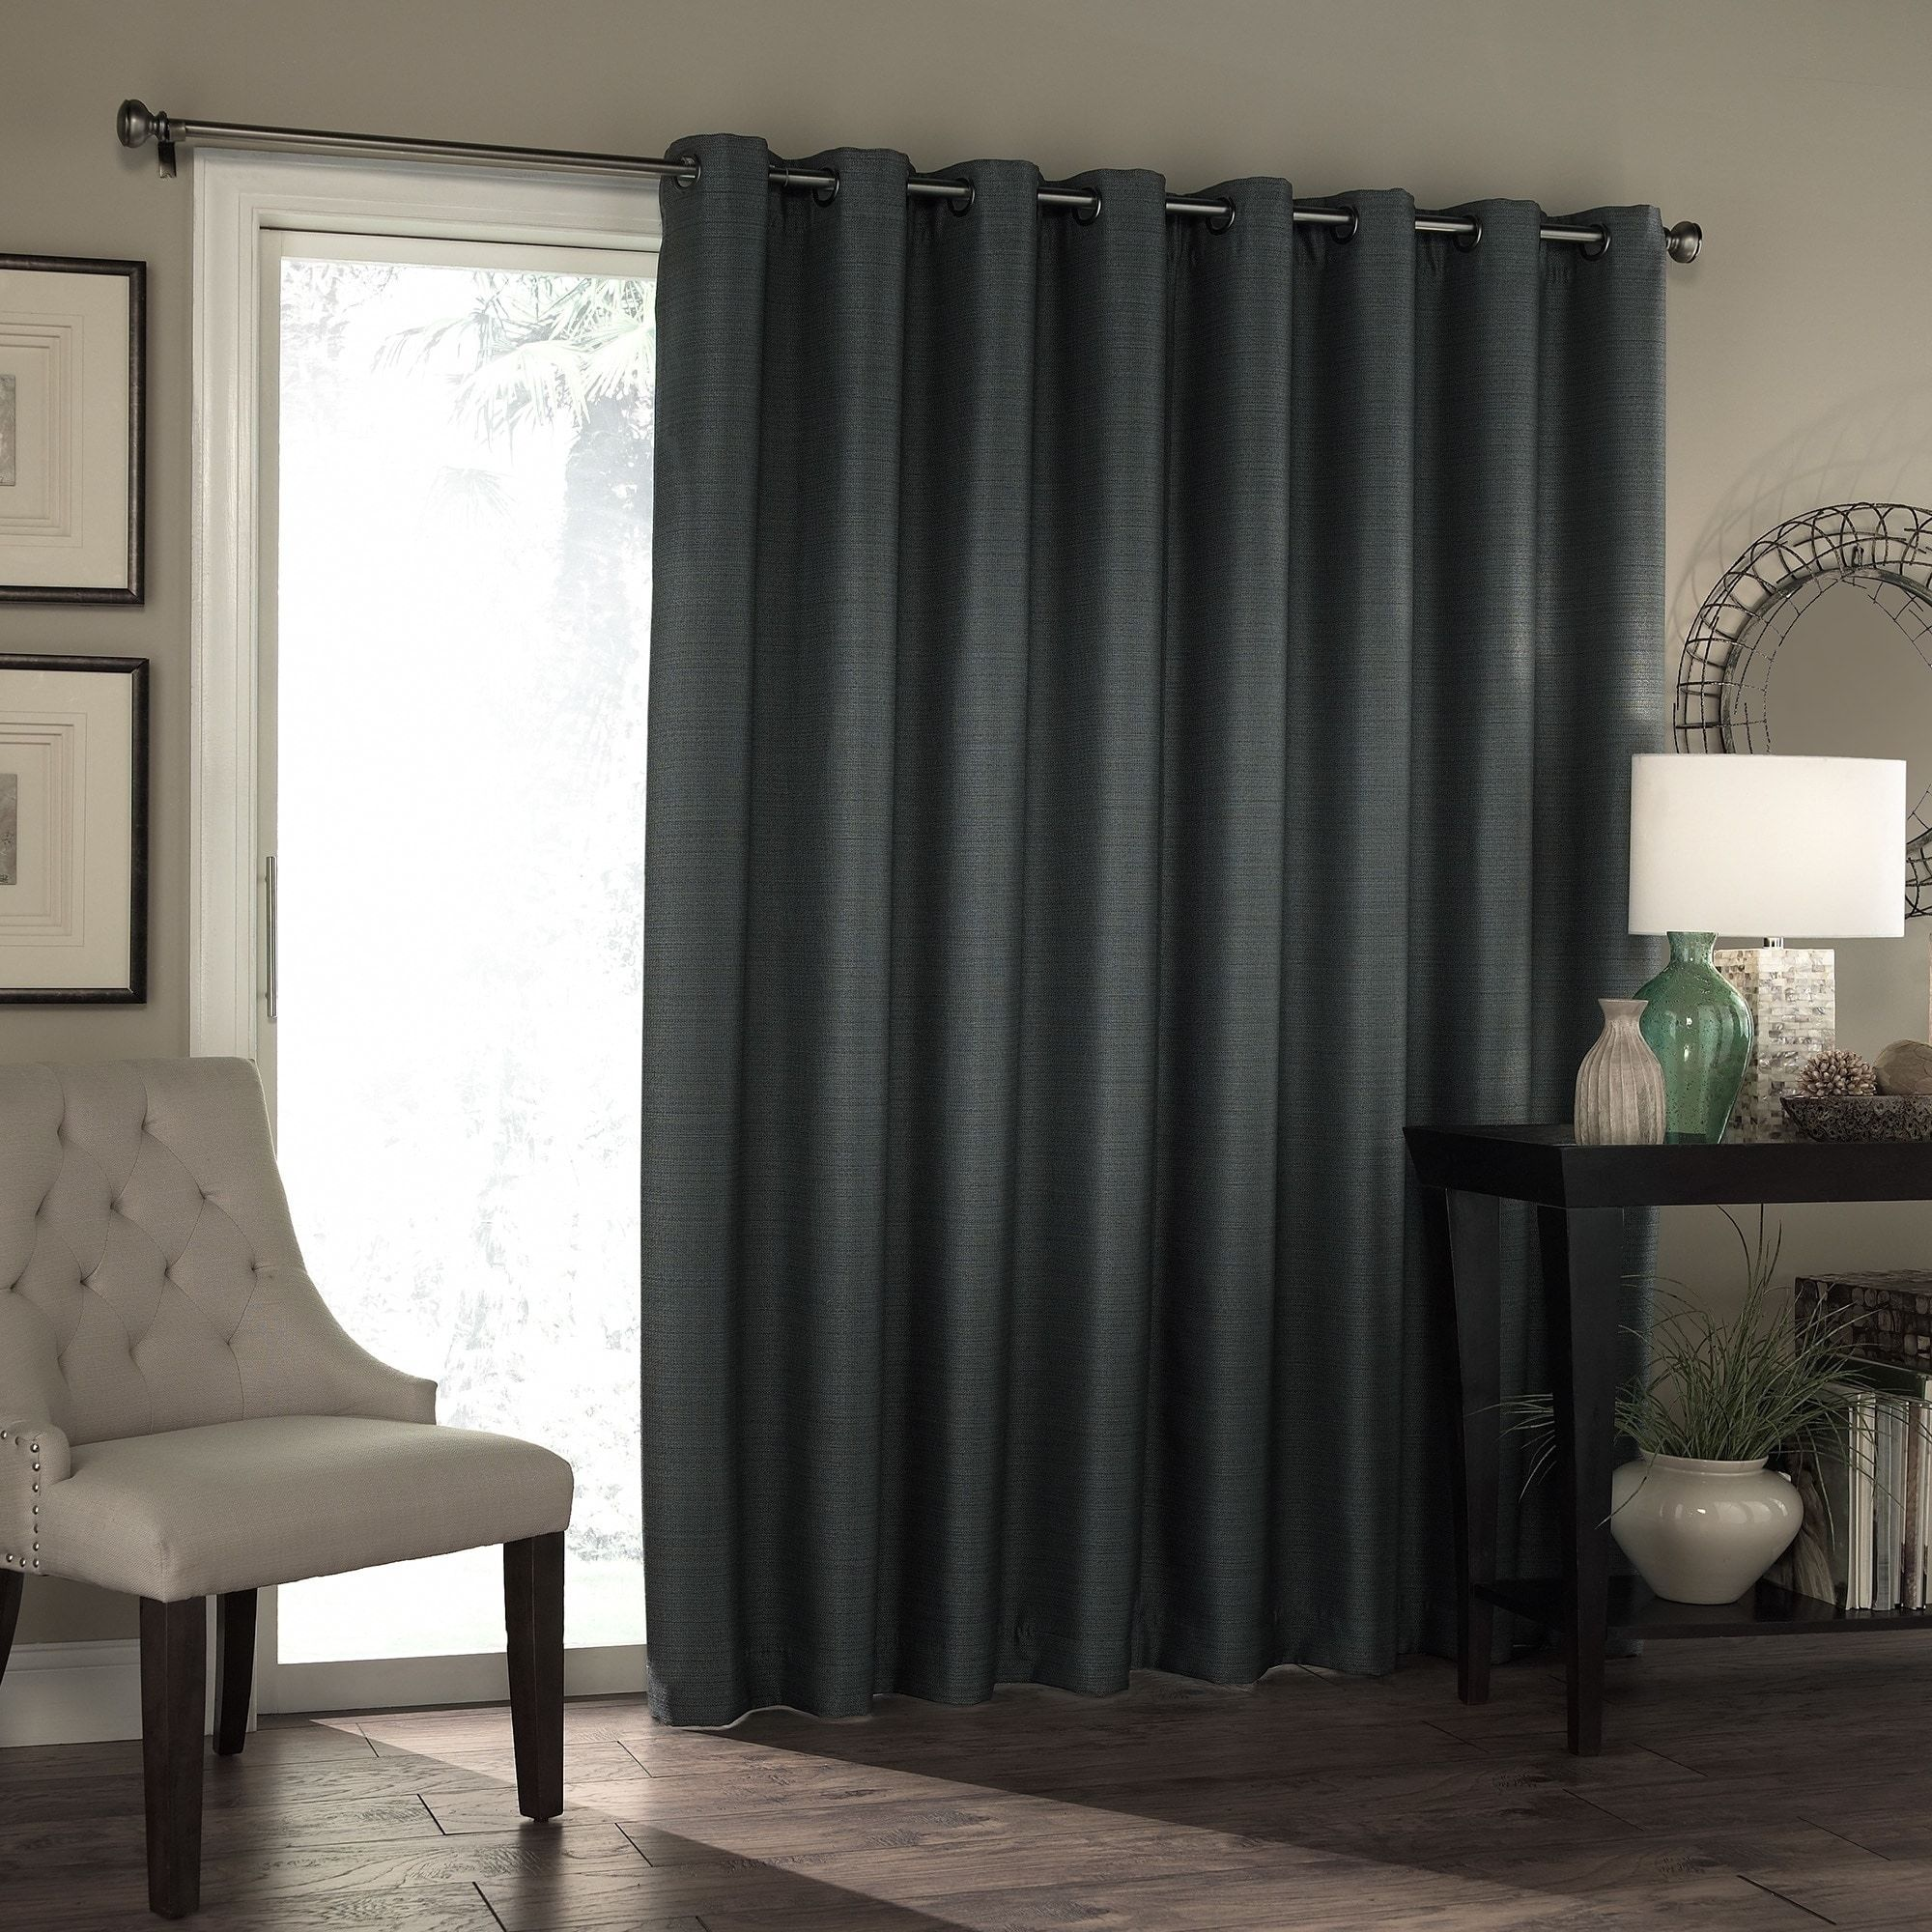 shocking curtains trend door of ideas curtain track patio sxs uncategorized style and sliding blind